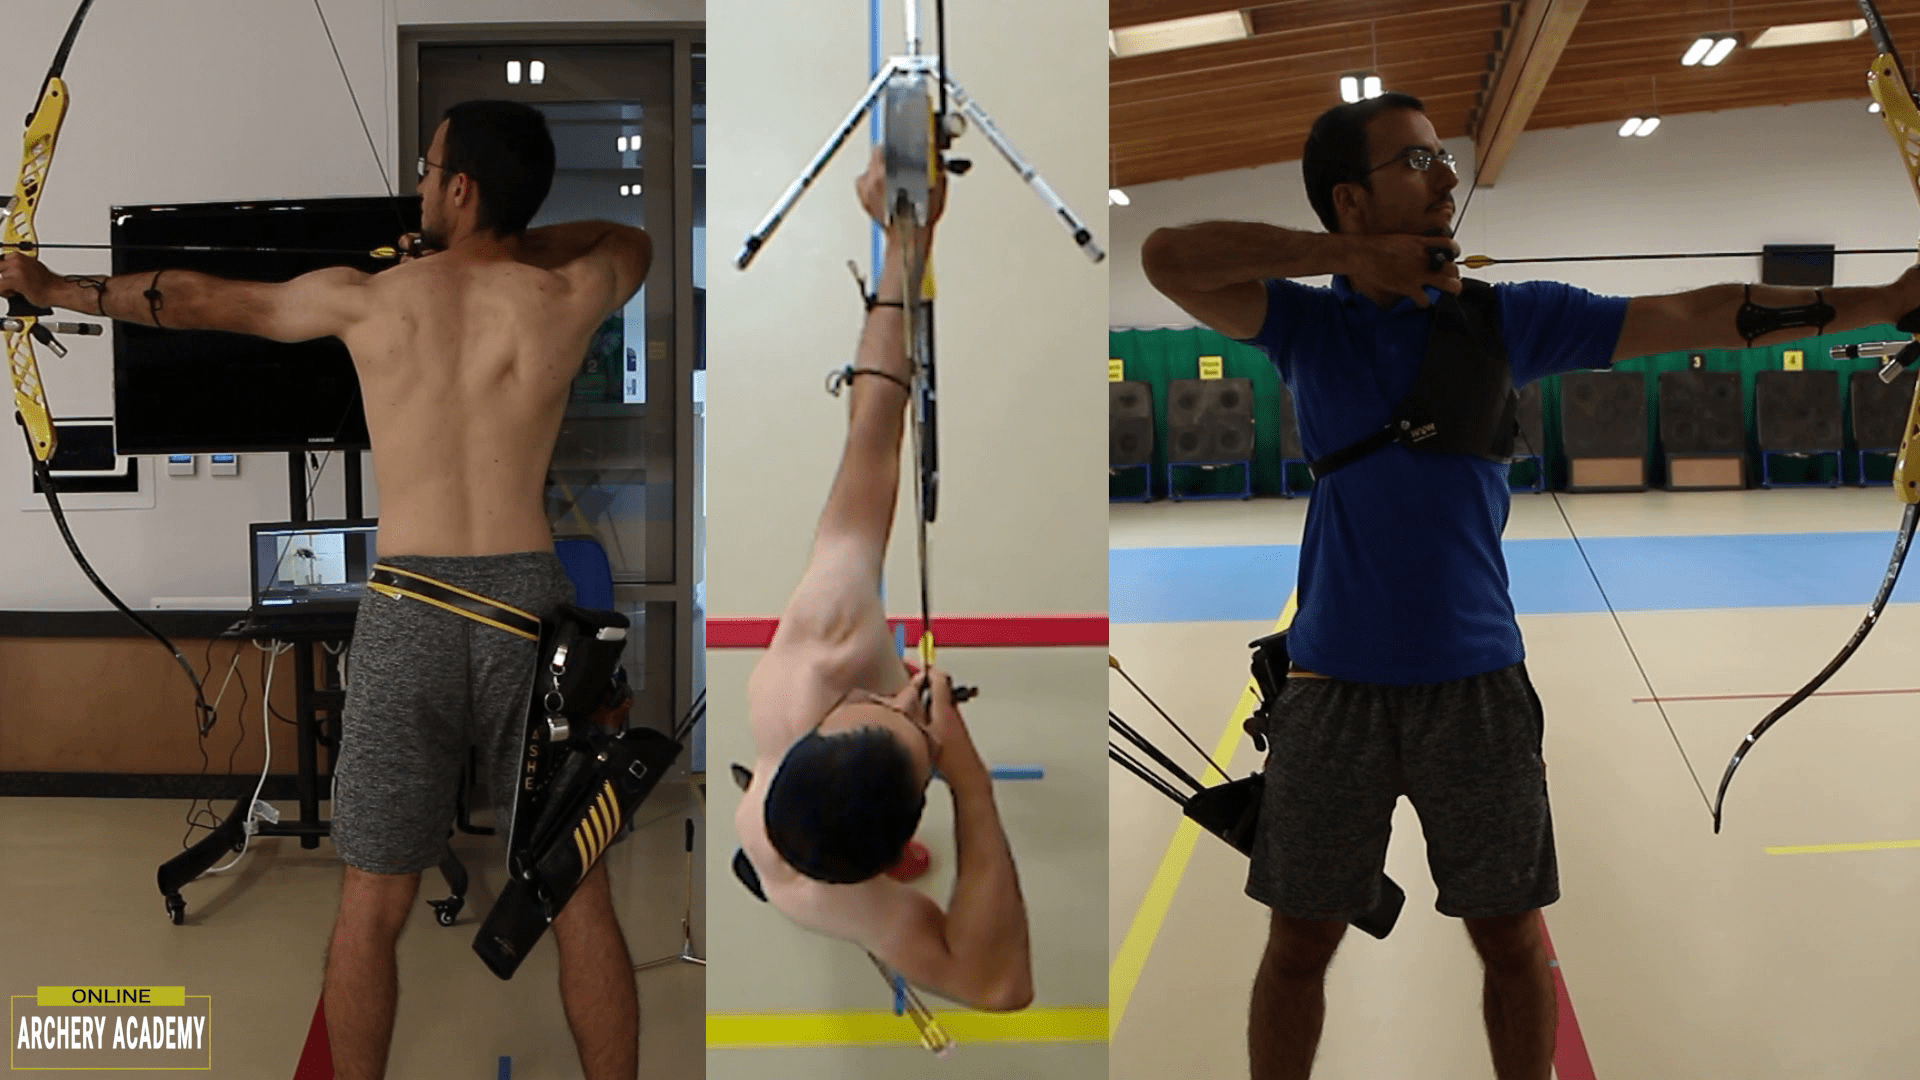 elite recurve olympic archer showing set-up position